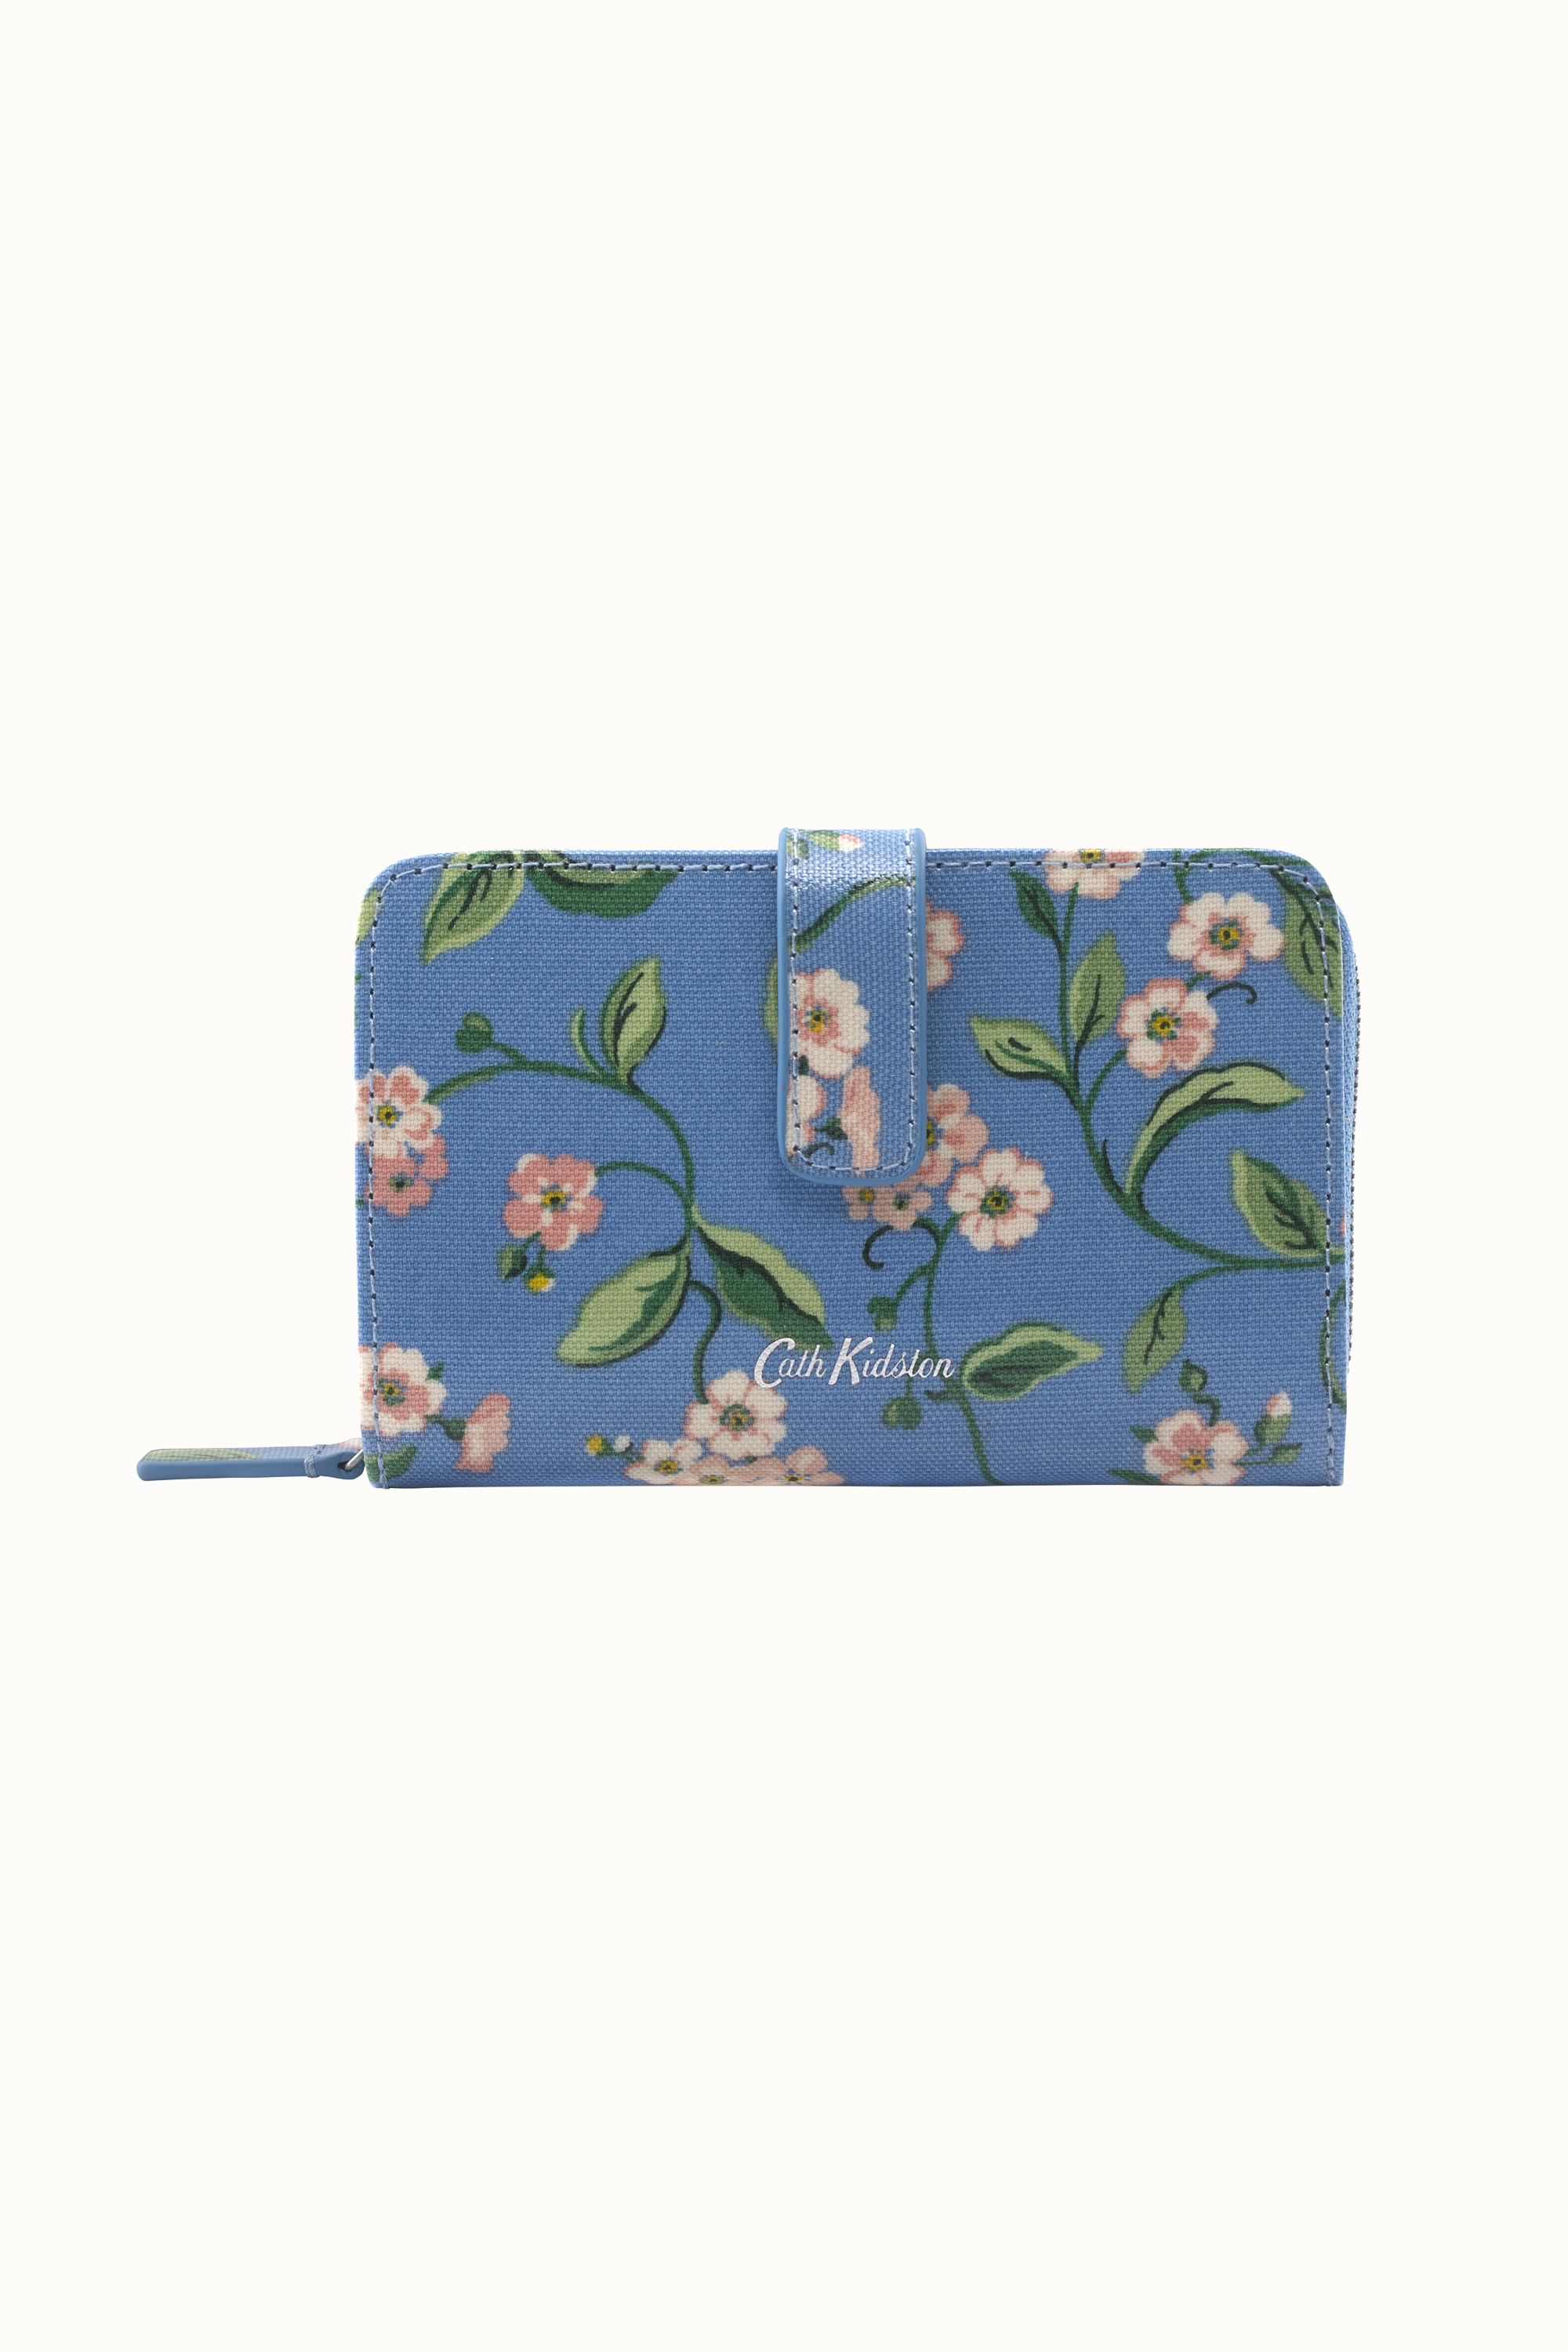 Cath Kidston Forget Me Not Folded Zip Wallet in Mid Blue